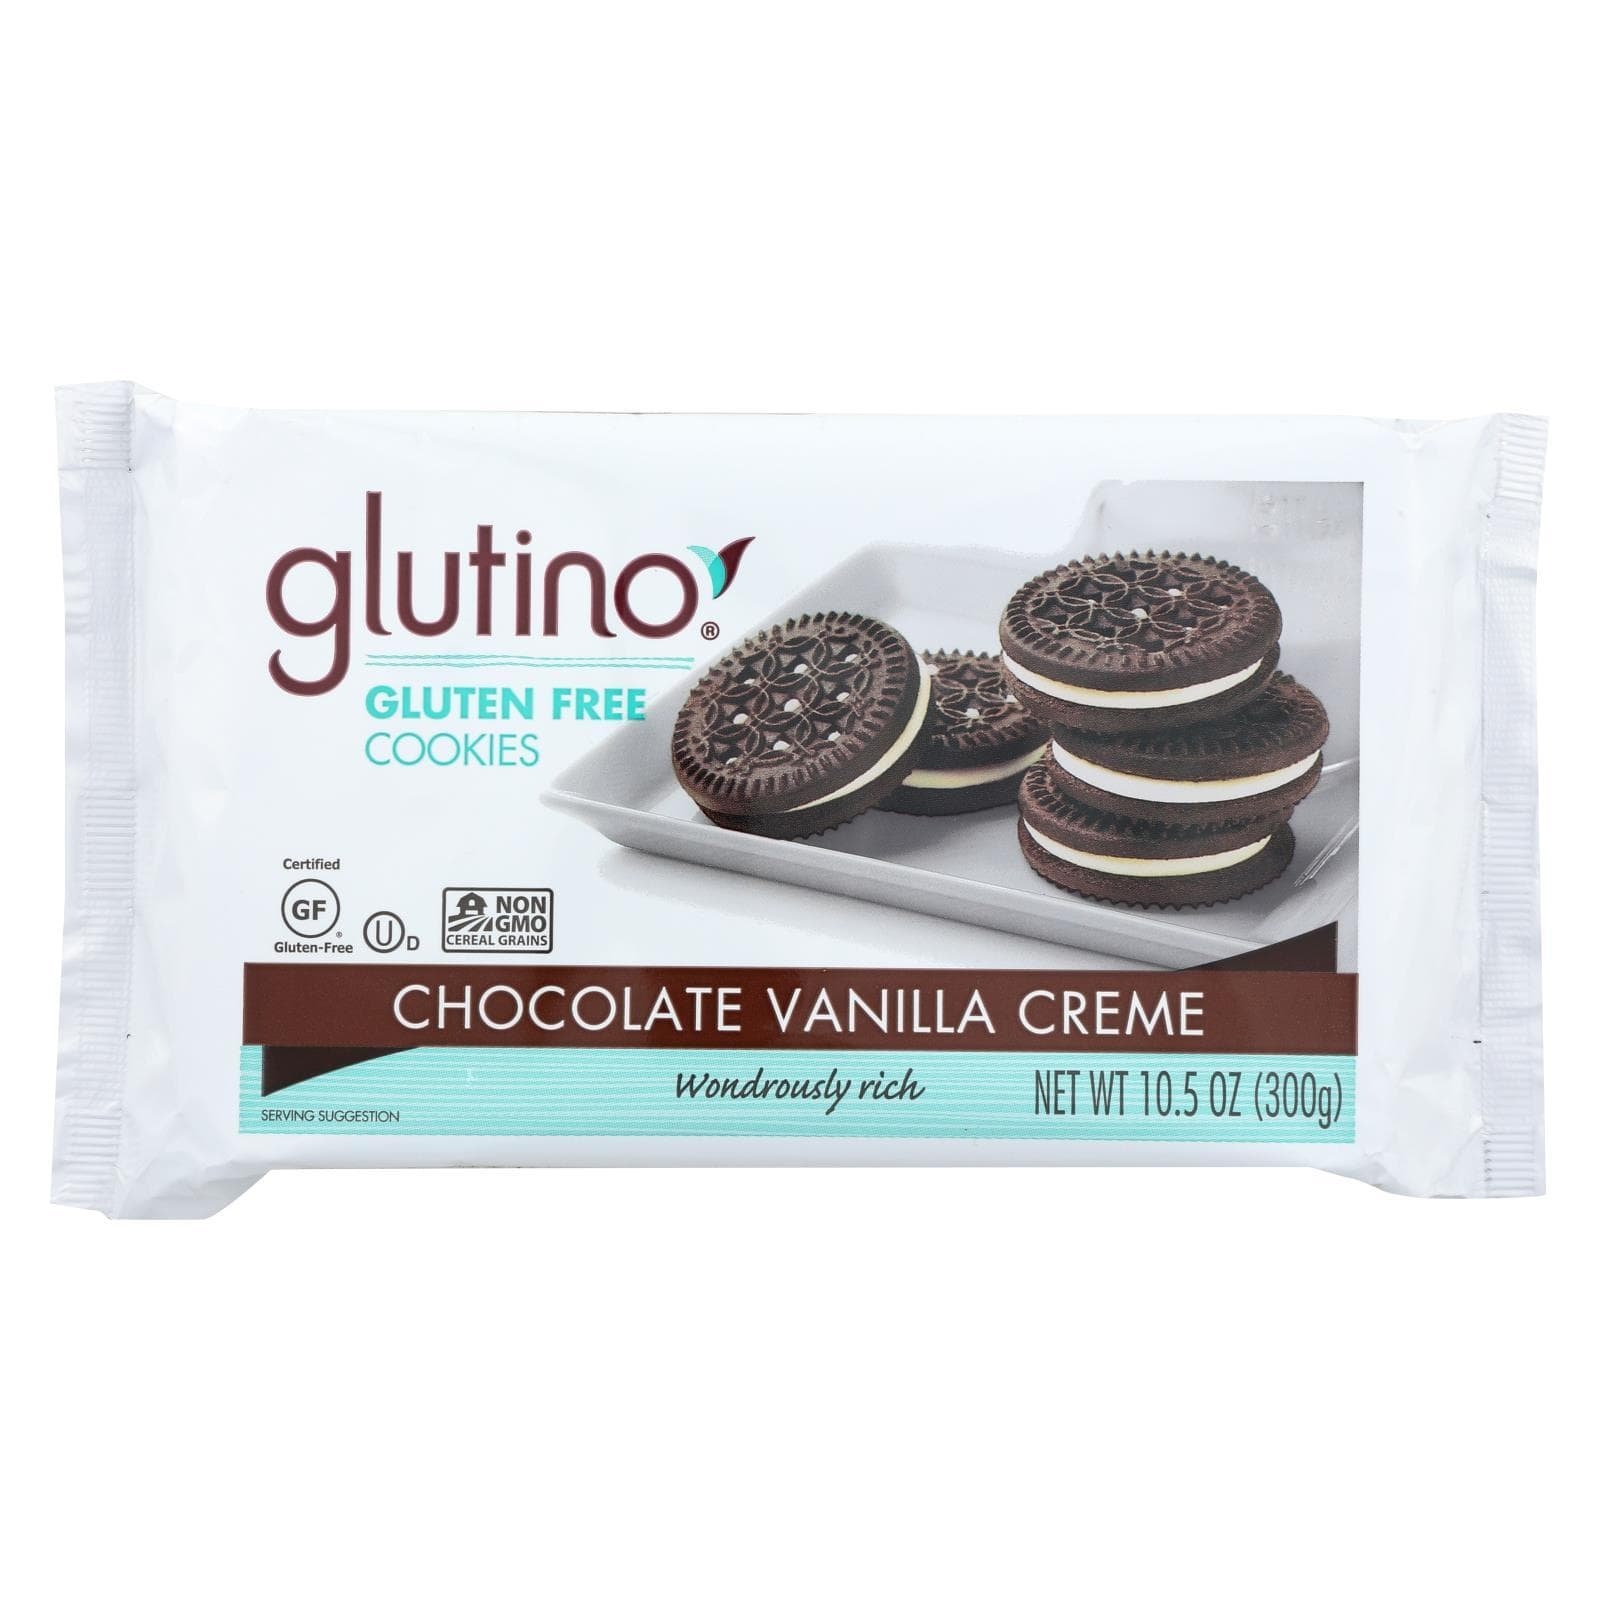 Glutino Cookies & Pastries Glutino Vanilla Creme Cookies - Case Of 12 - 10.5 Oz.